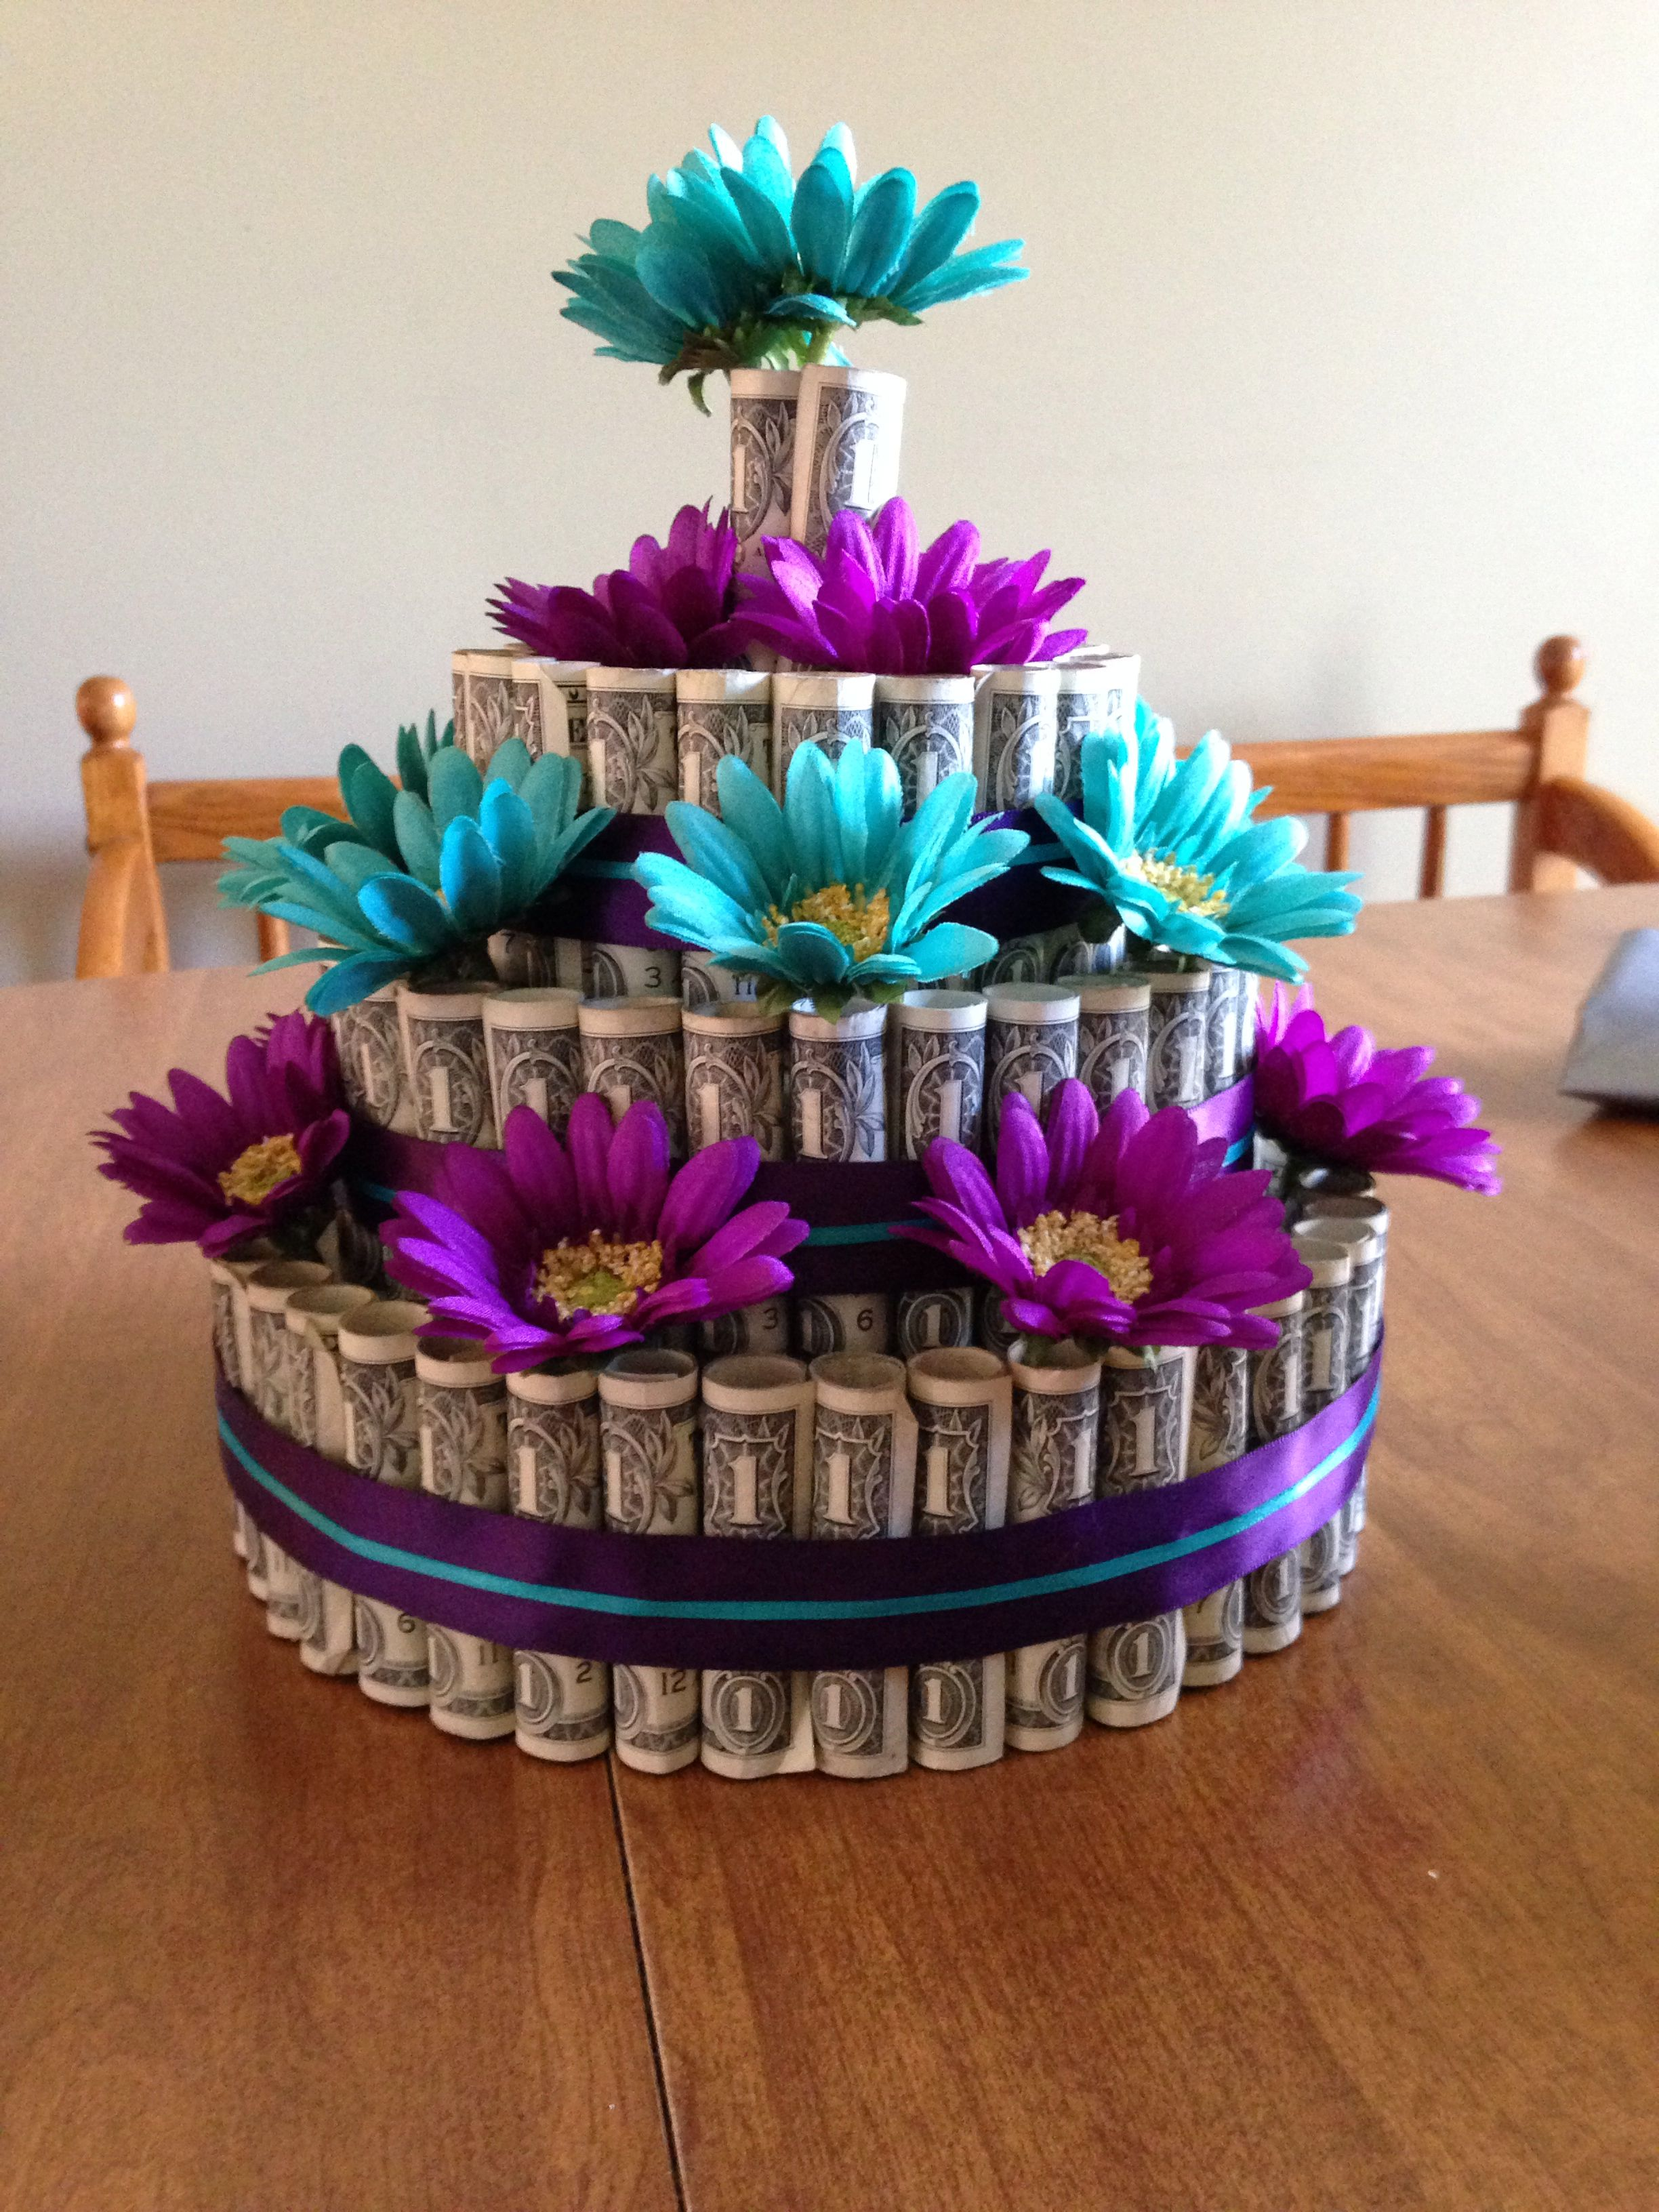 Wedding Gift For Brother Cash : Money Cake I made for my brother and sister in-laws wedding Money ...